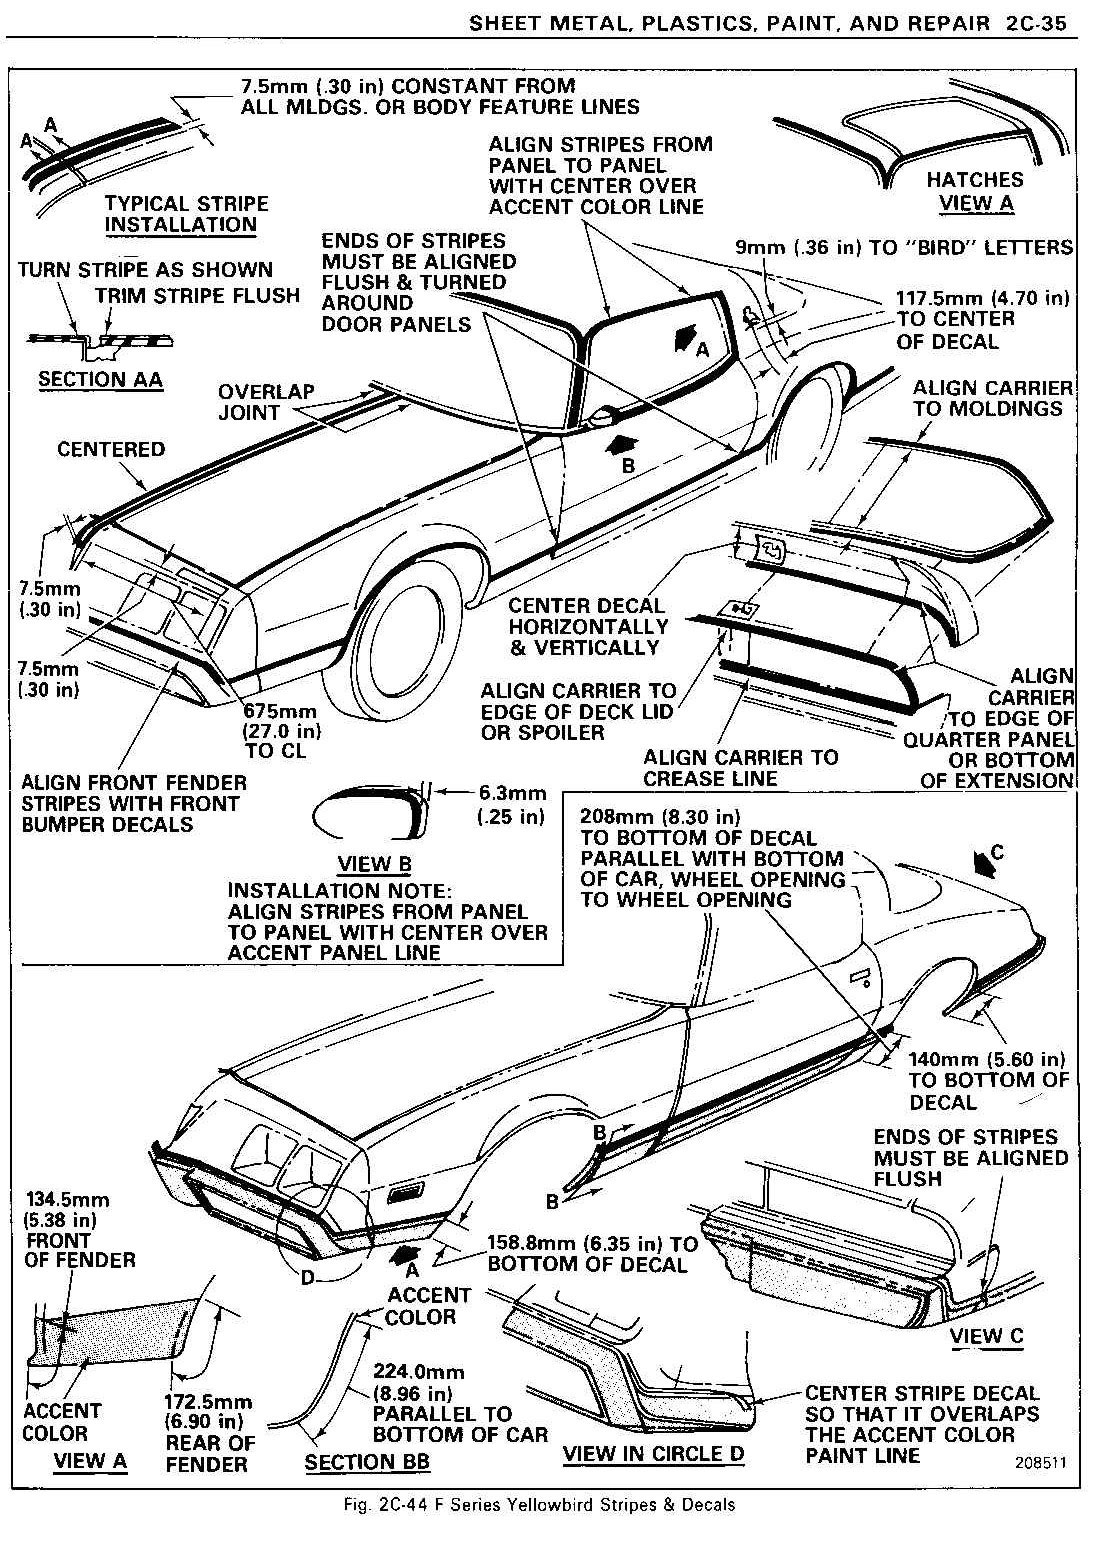 1980 Firebird Esprit Wiring Harness Legend : 42 Wiring